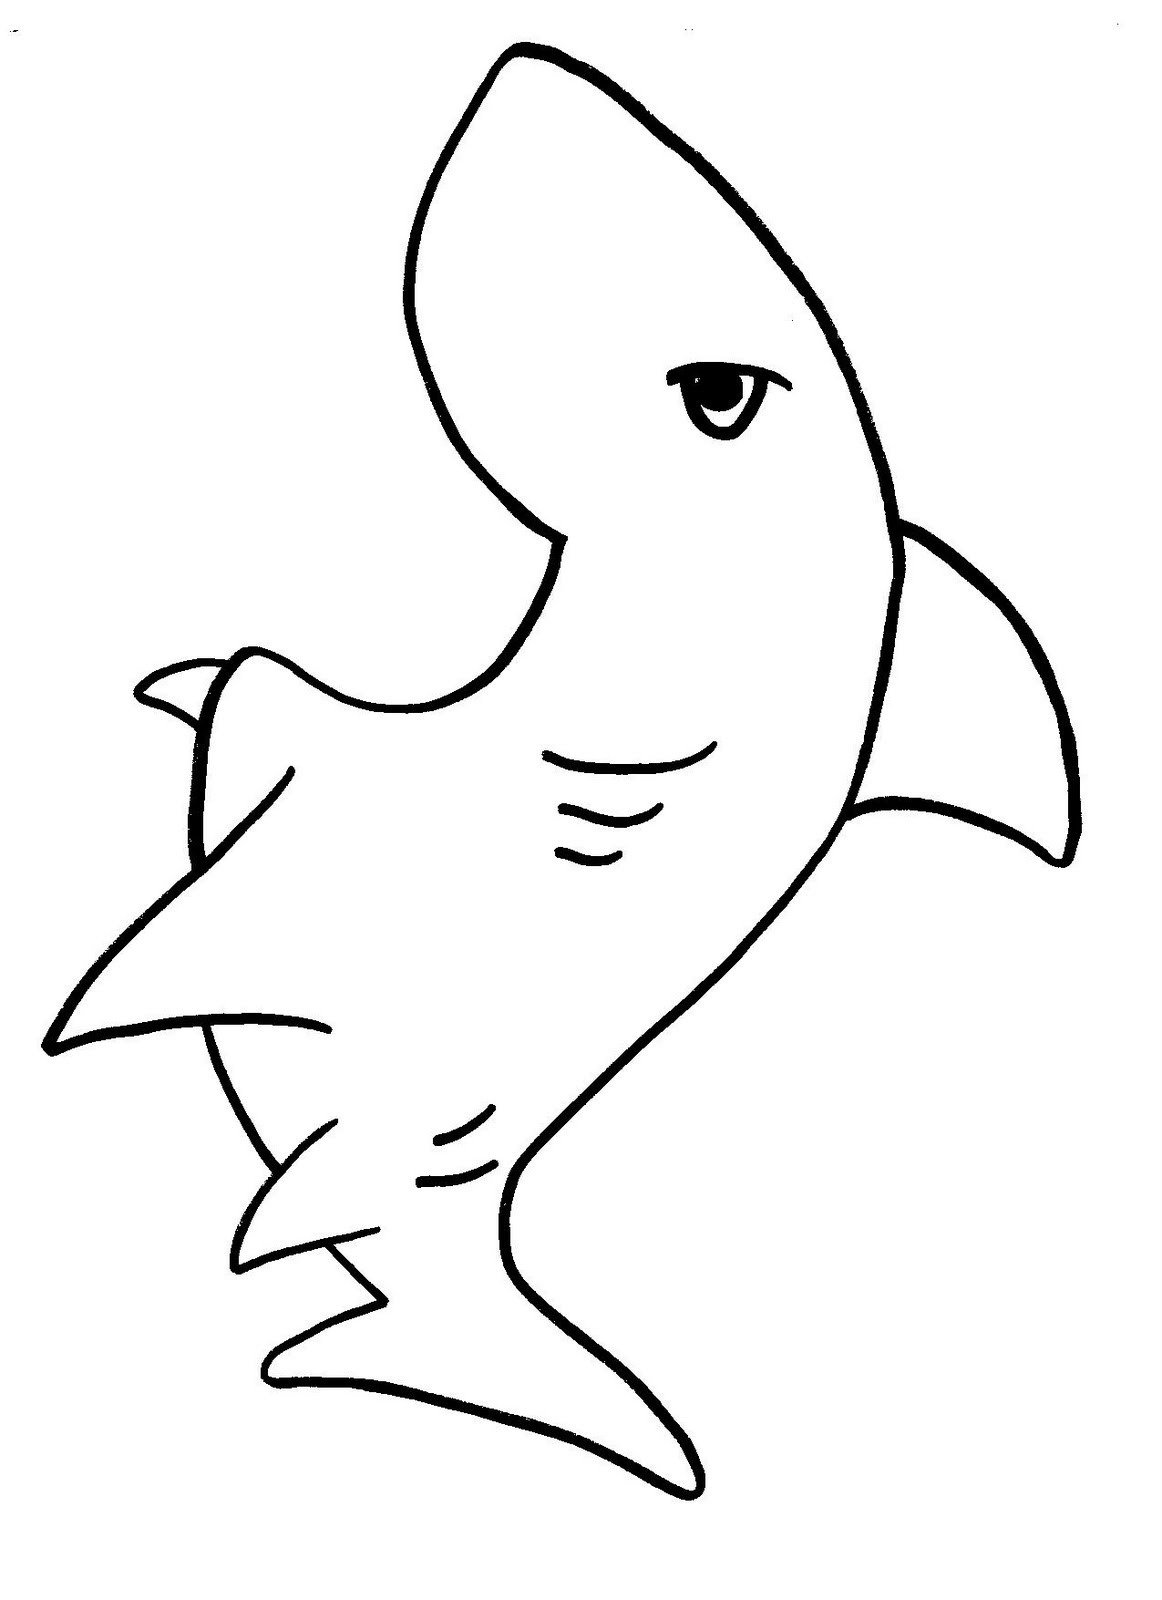 shark colouring sheets free printable shark coloring pages for kids animal place sheets colouring shark